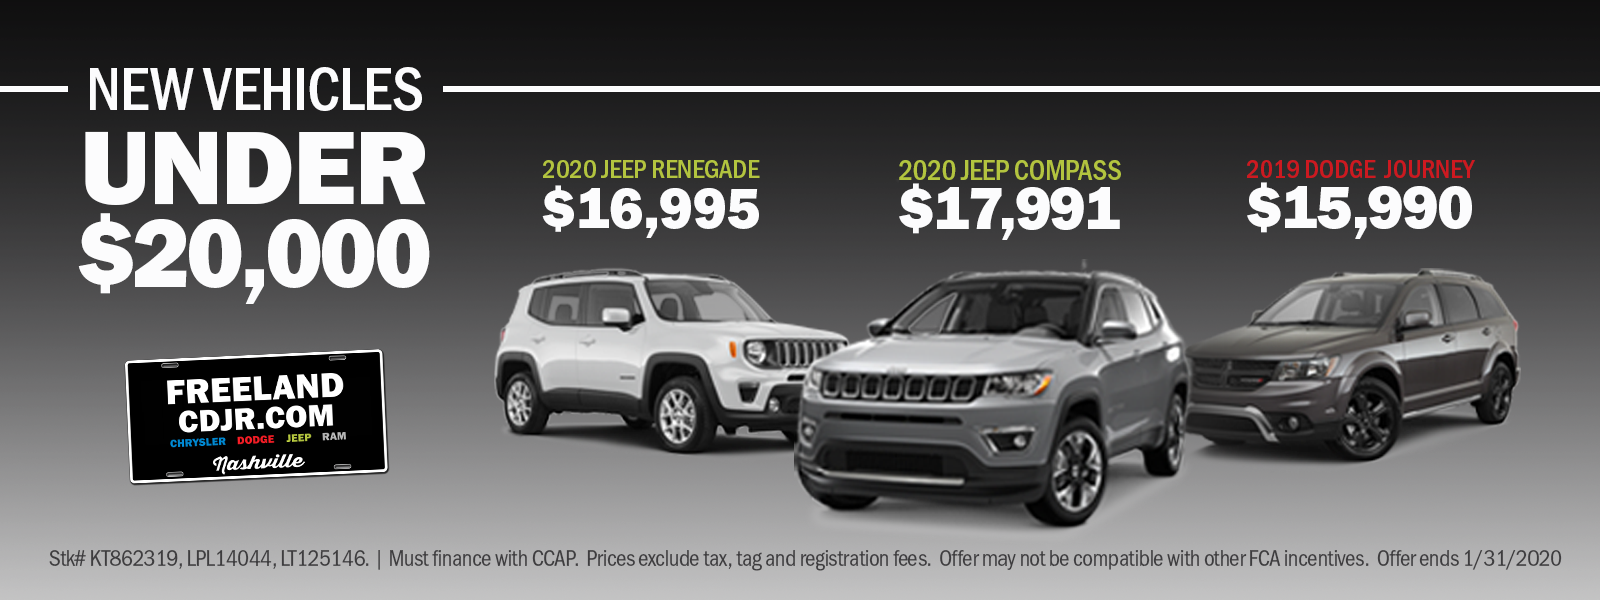 Dodge Dealership Nashville Tn >> Freeland Chrysler Dodge Jeep Ram Chrysler Dodge Jeep